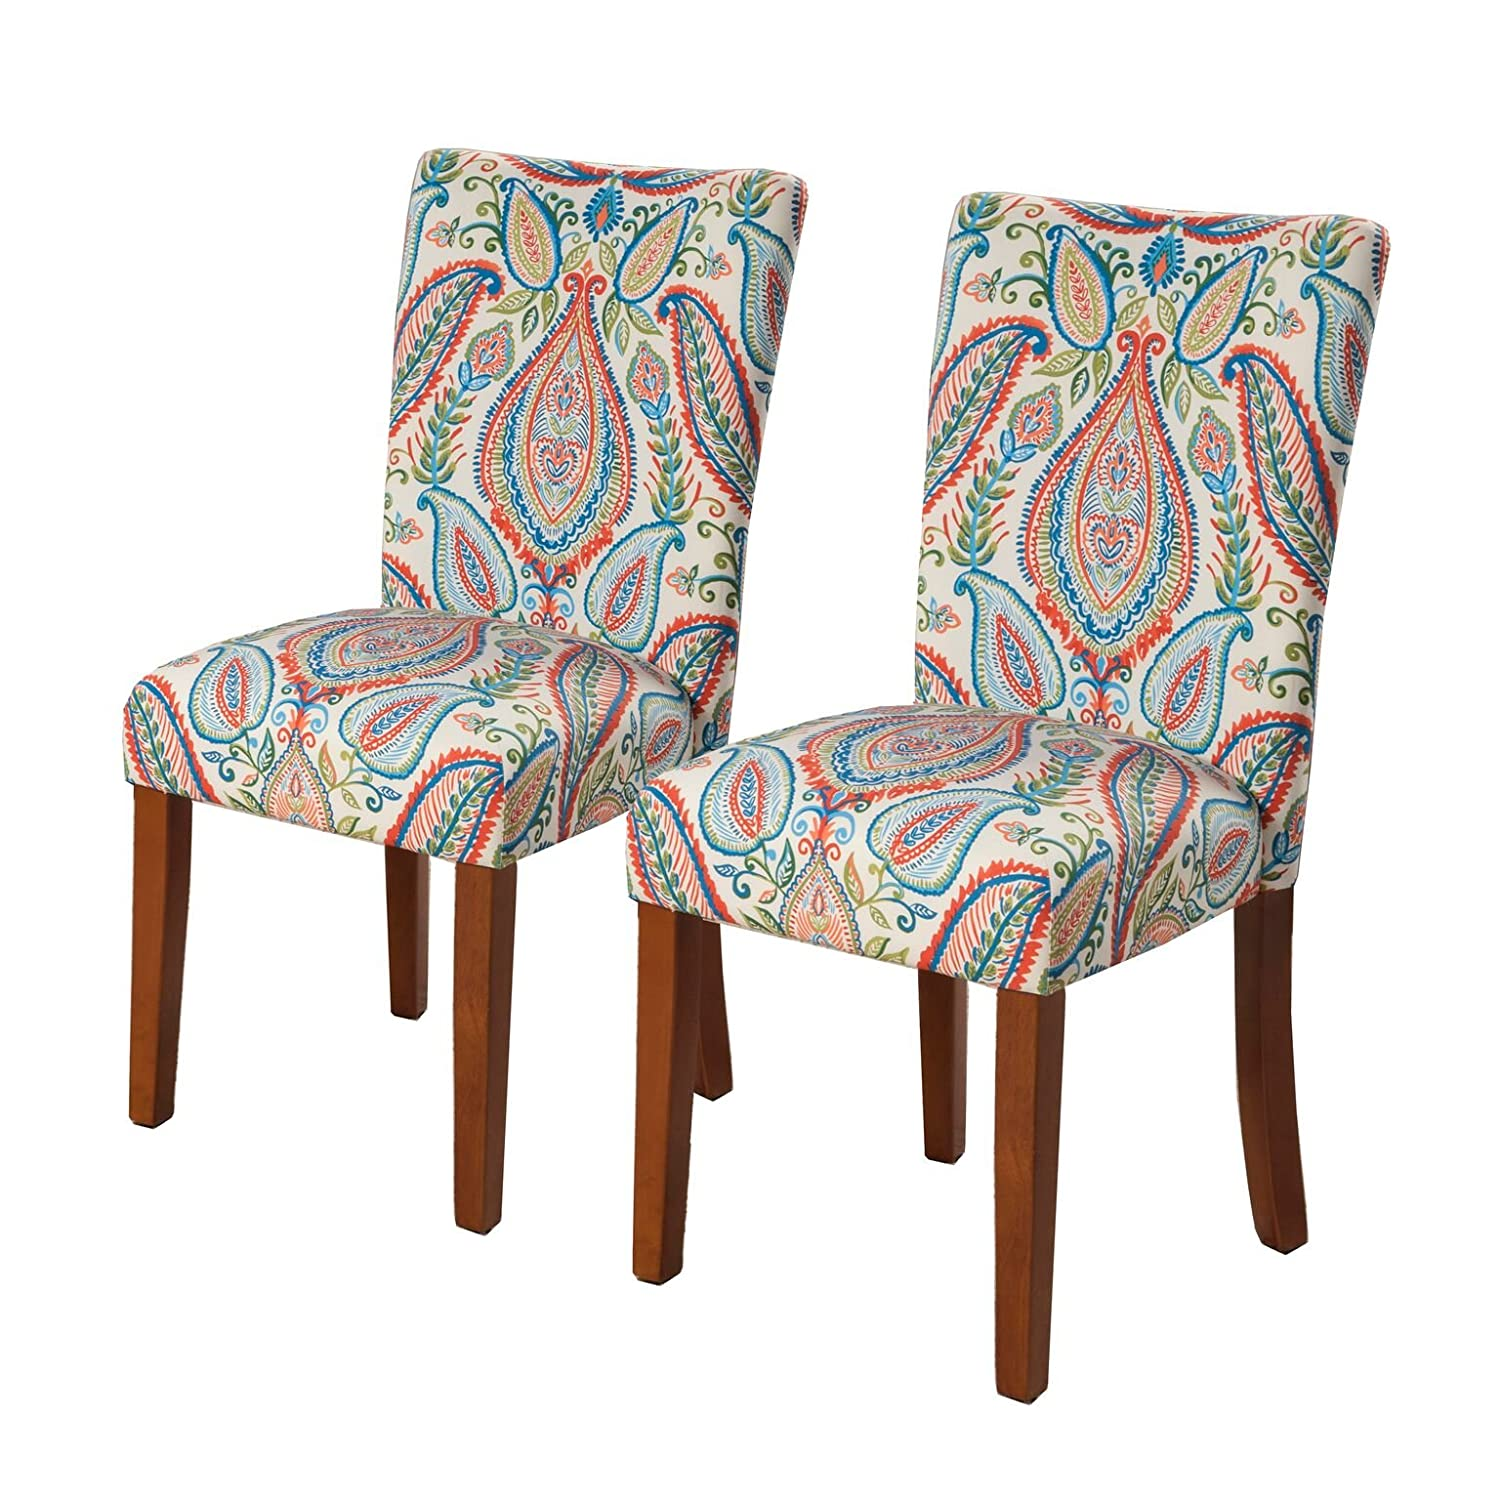 HomePop Parsons Classic Upholstered Accent Dining Chair, Set of 2, Colorful Paisley